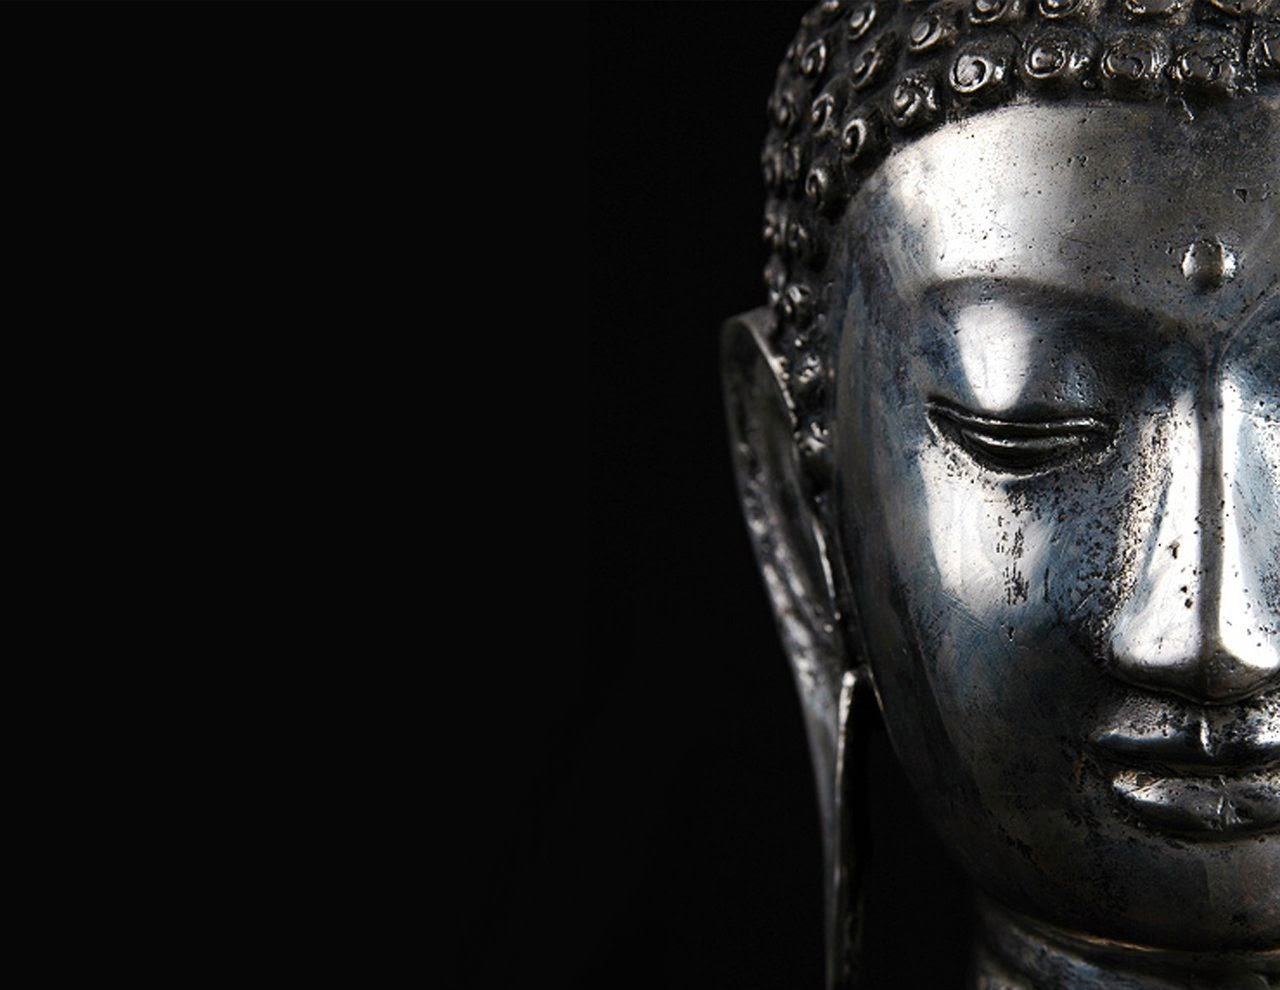 lord buddha face art hd images and statue wallpaper pixhome